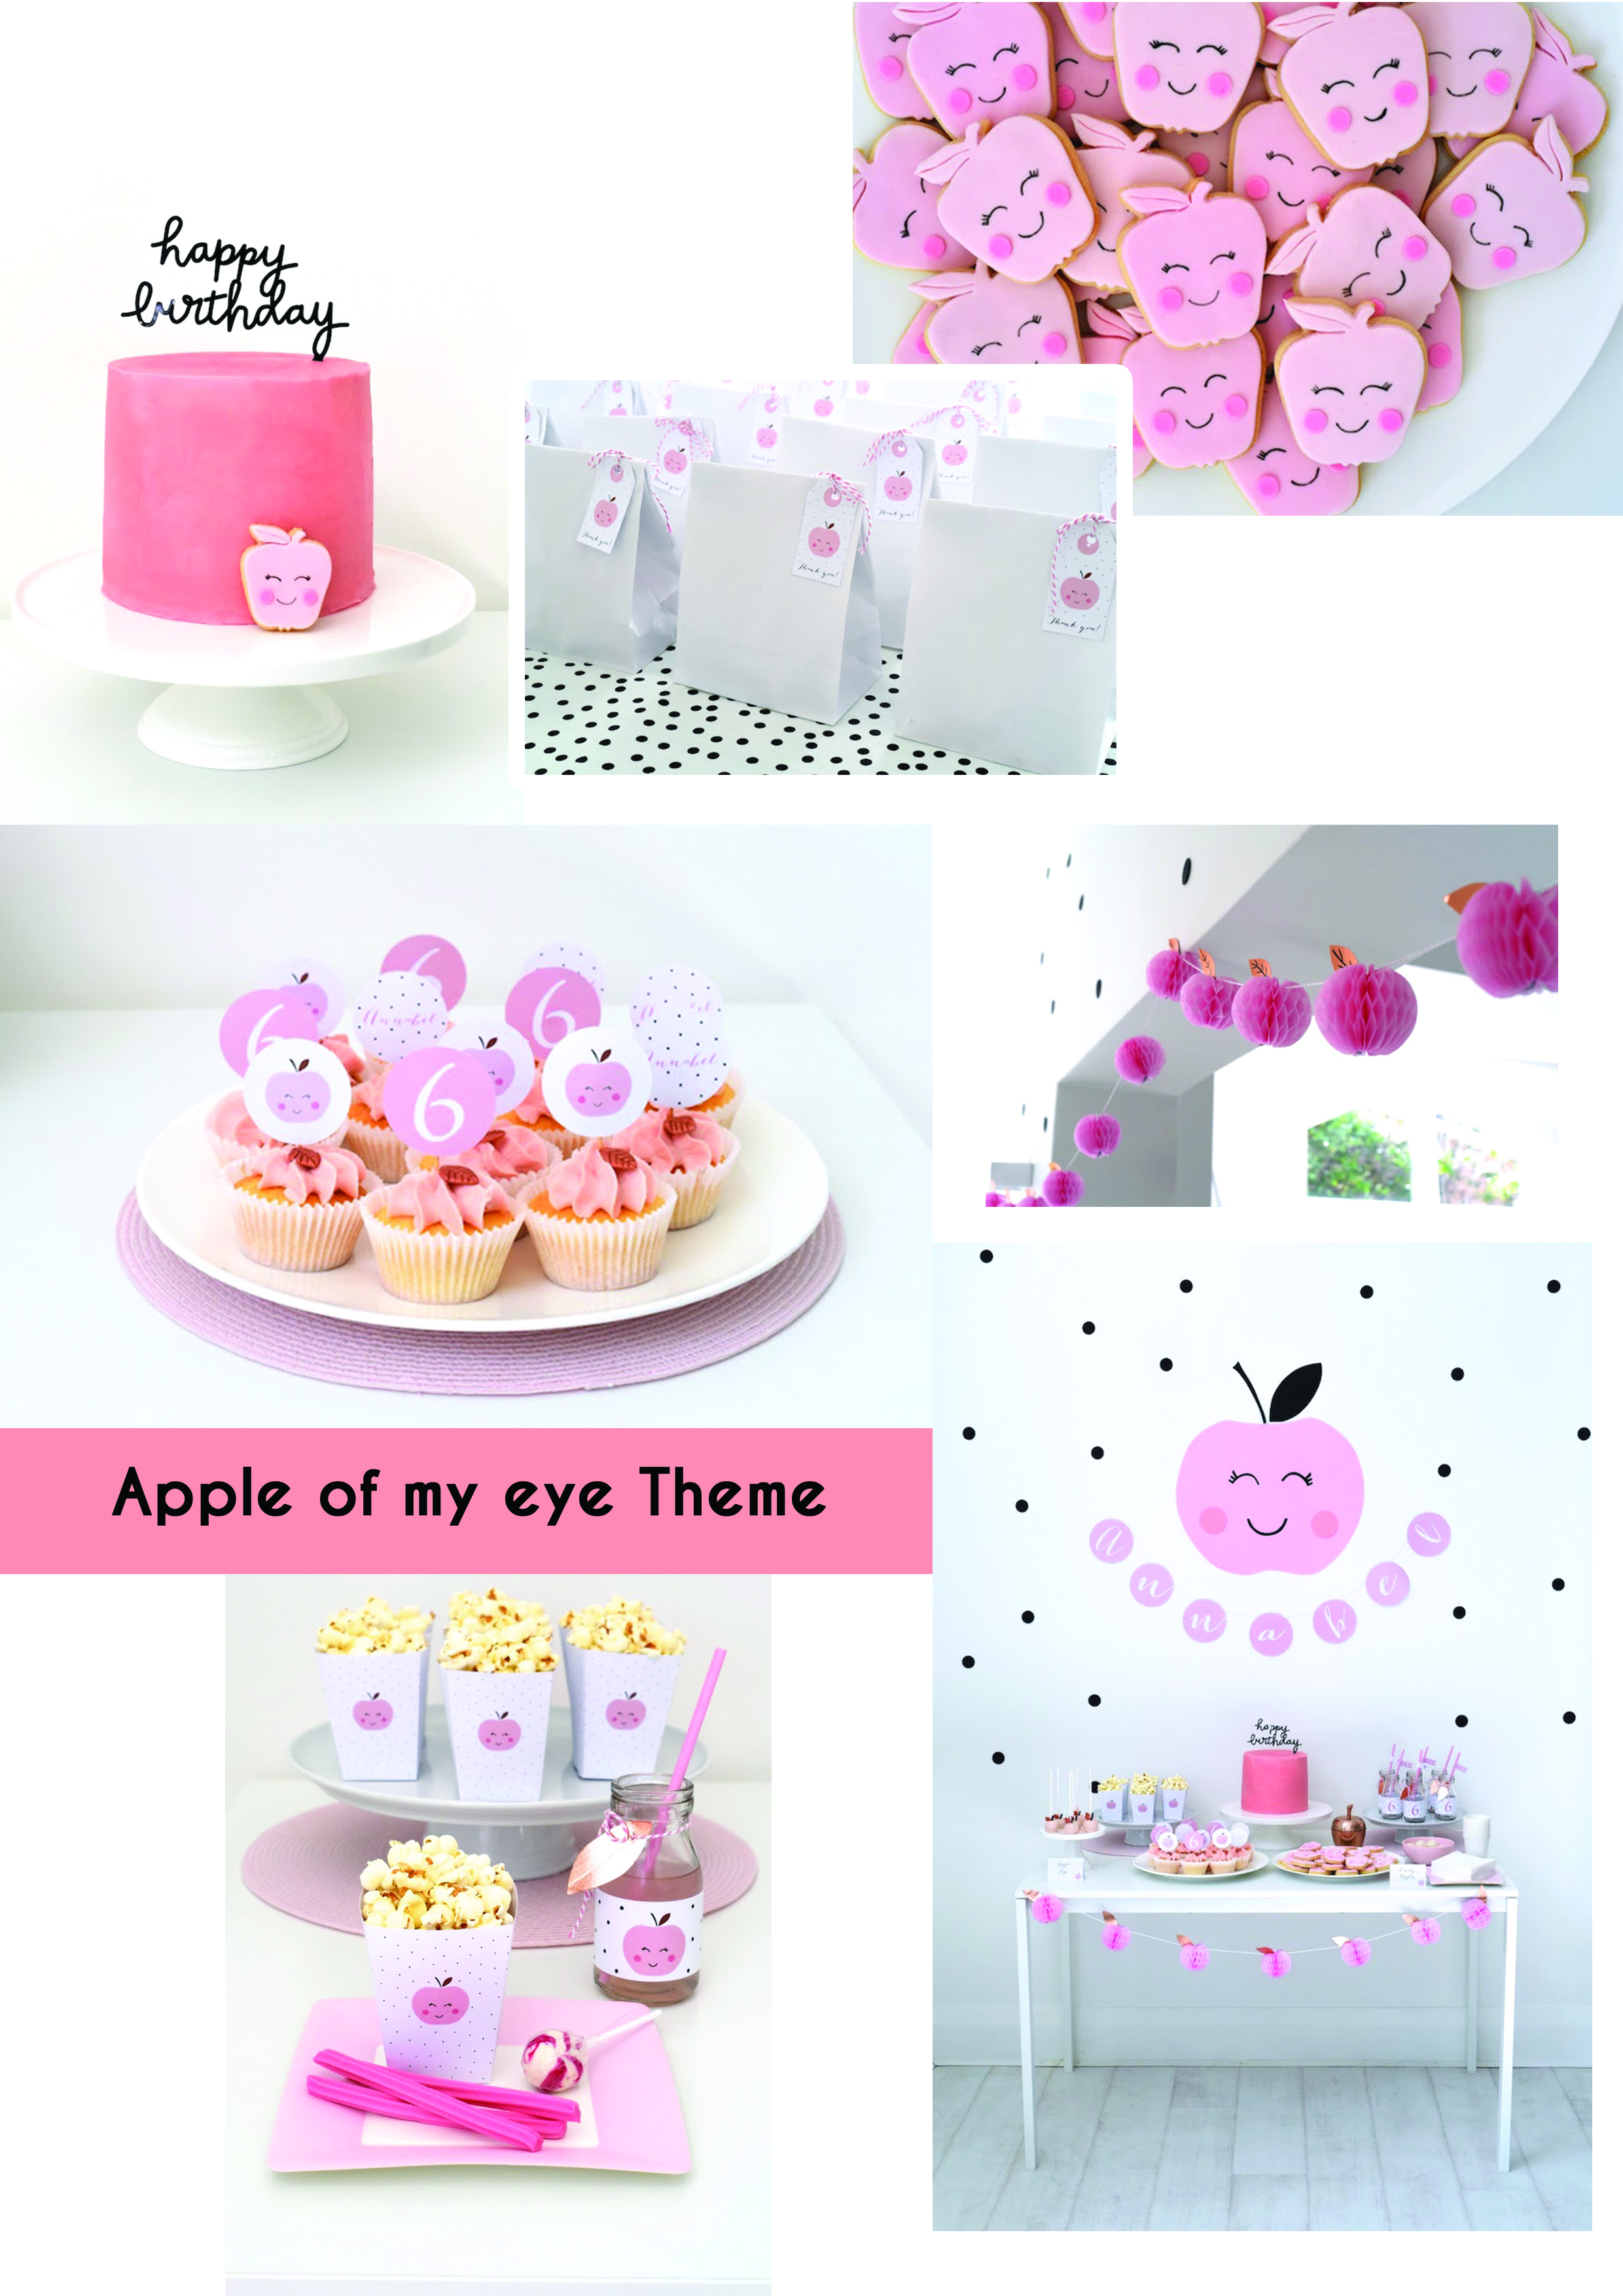 Moodboard - Apple of my eye theme.jpg